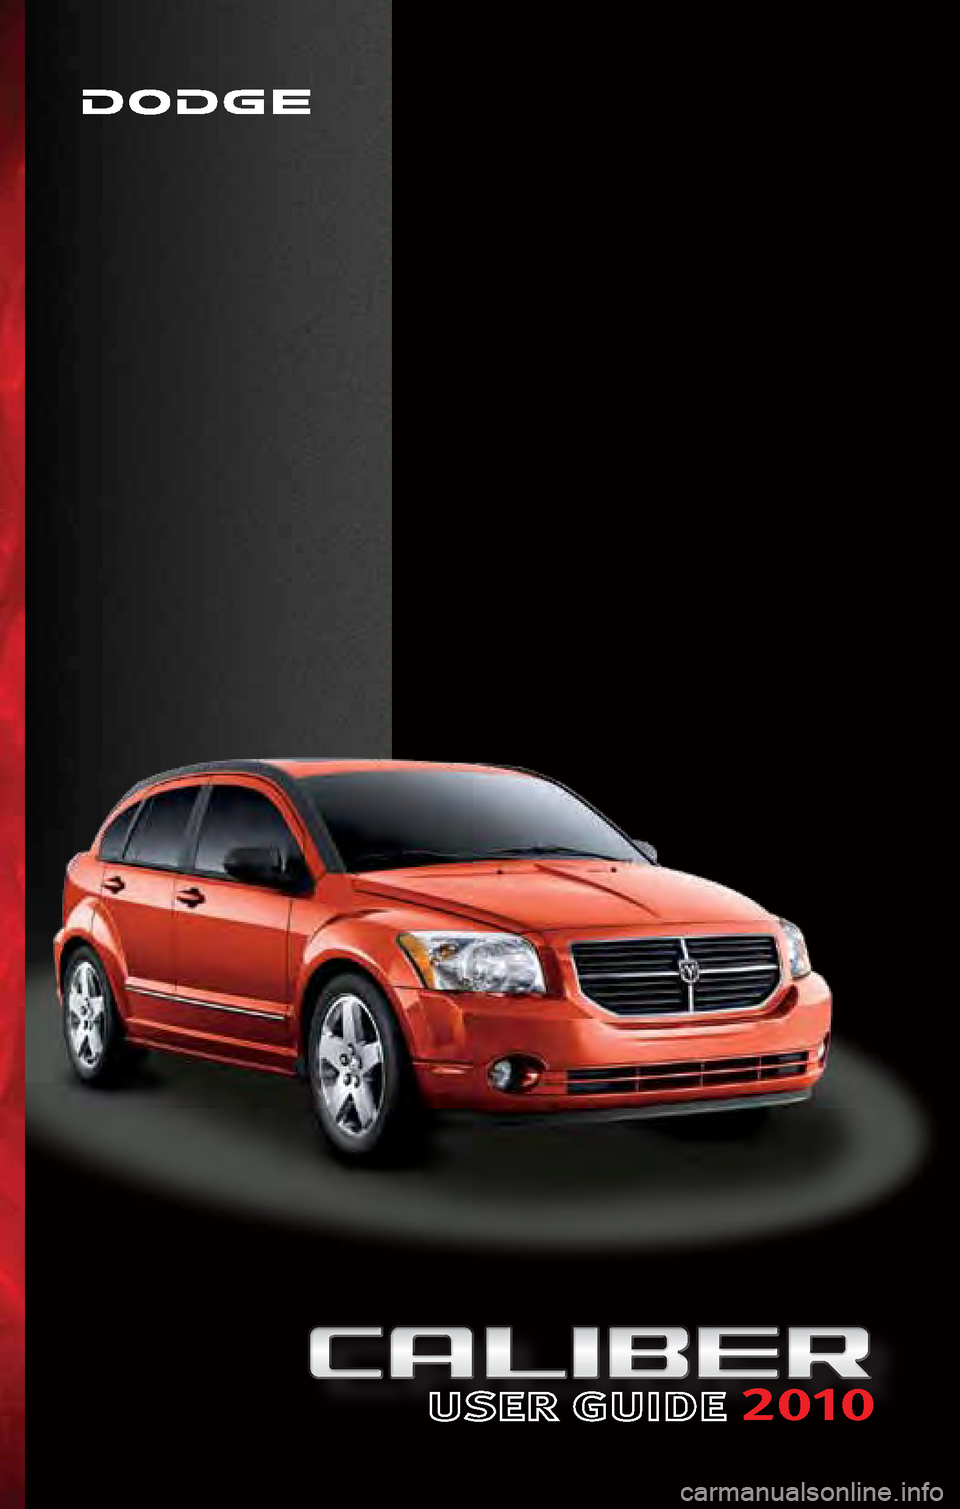 DODGE CALIBER 2010 1.G User Guide, Page 1